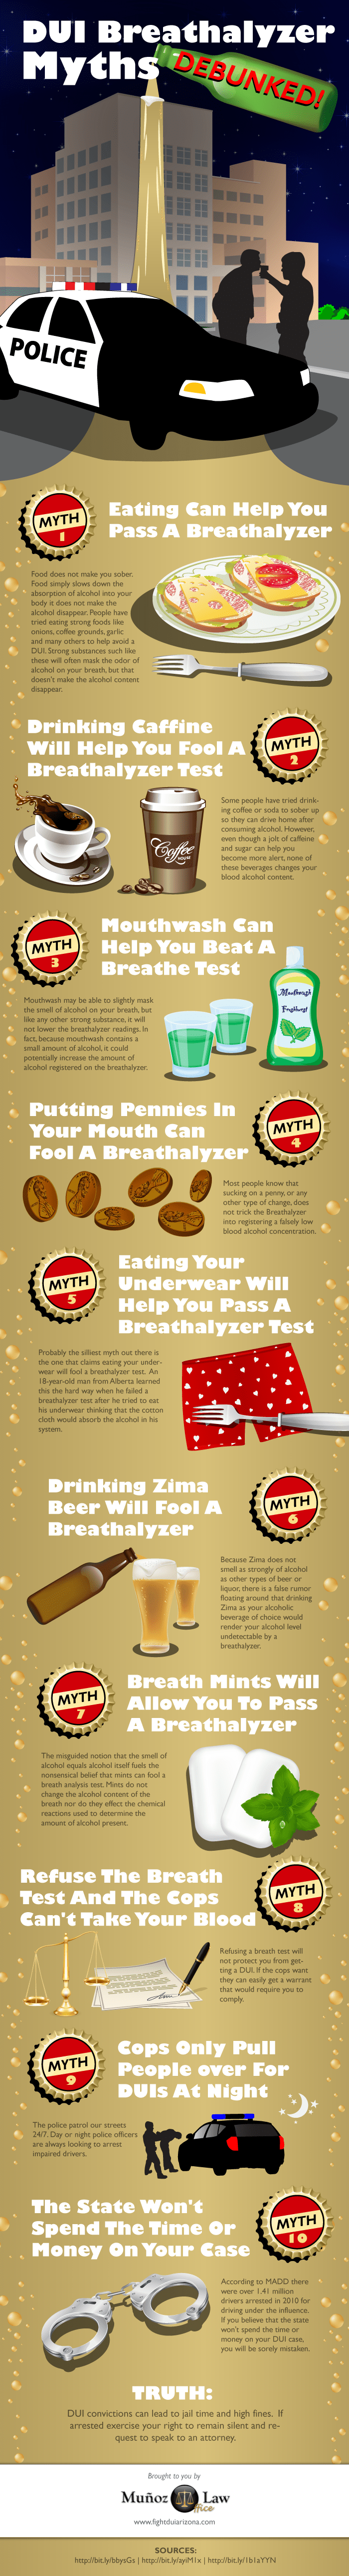 dui-breathalyzer-myths-debunked_51e831a240599